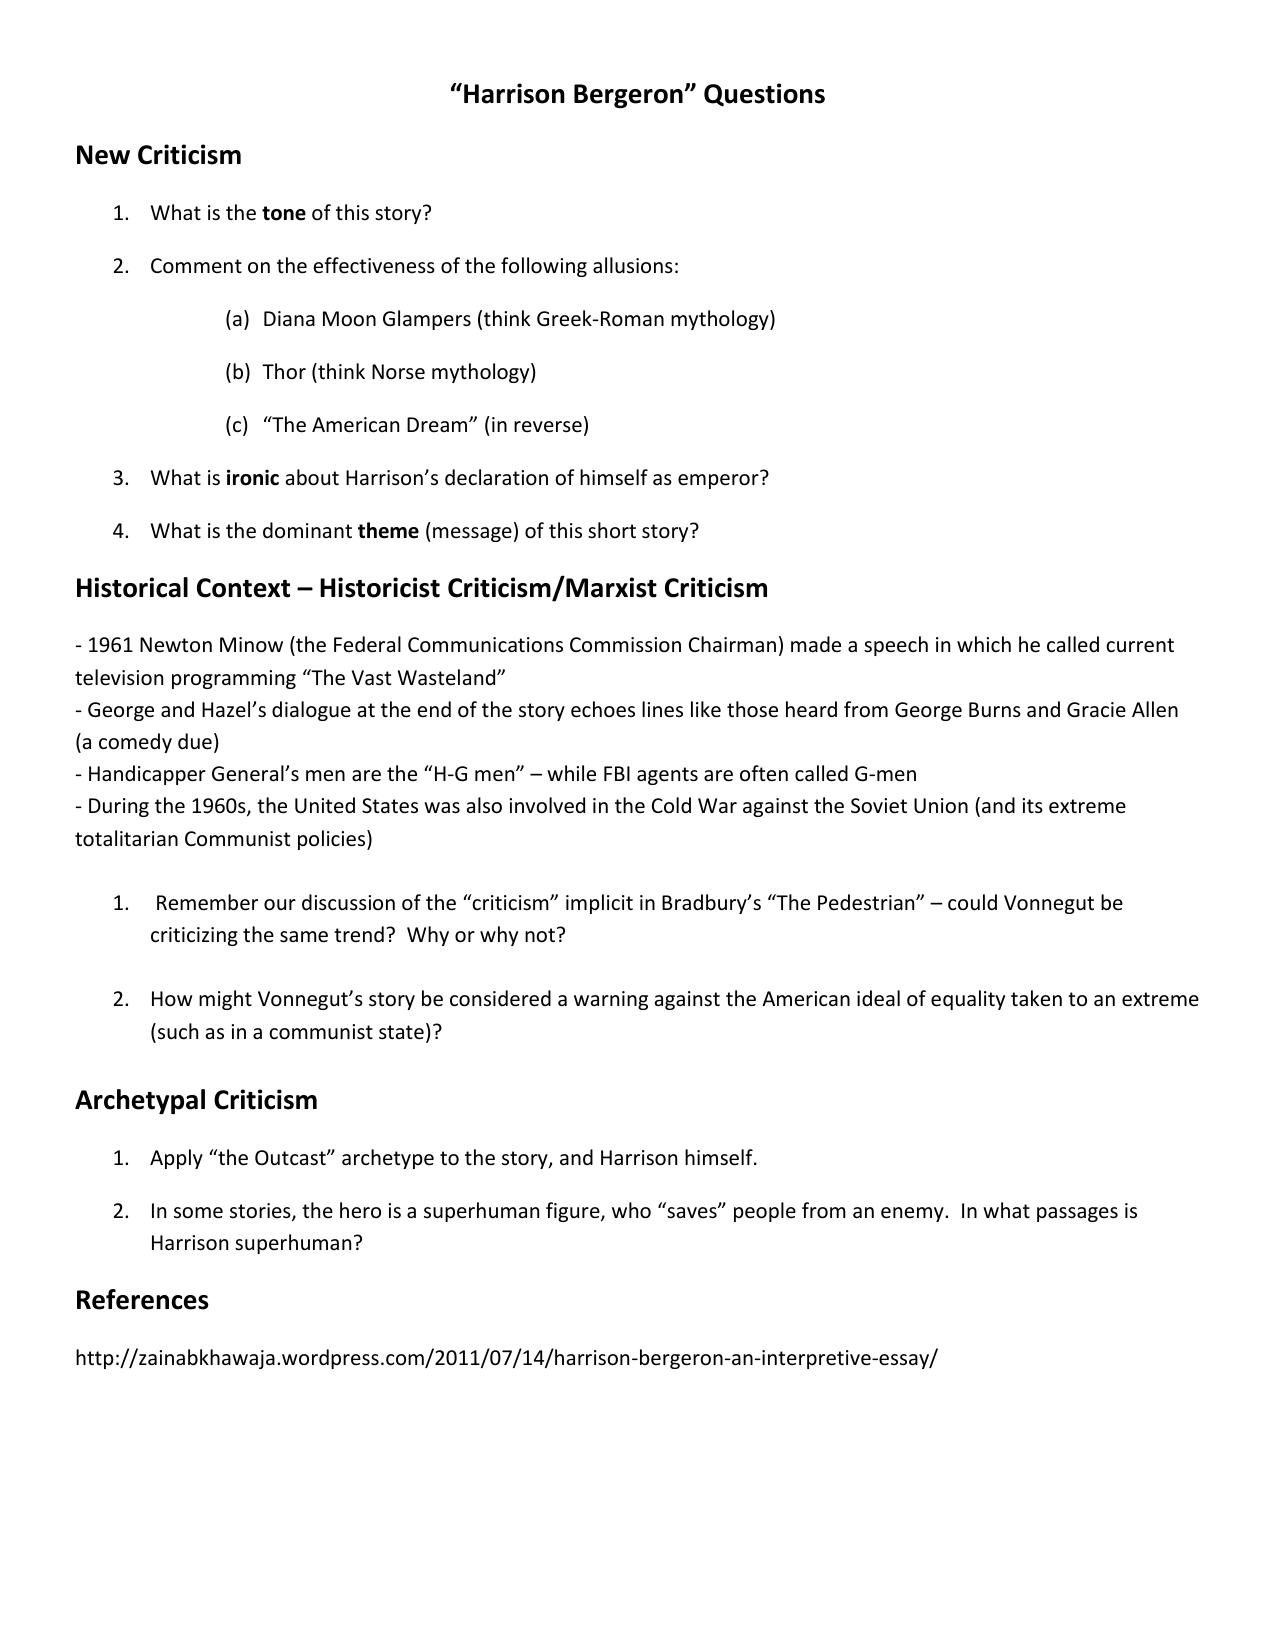 harrison bergeron 7 essay Check out our top free essays on compare contrast harrison bergeron 2081 to help you write your own essay.